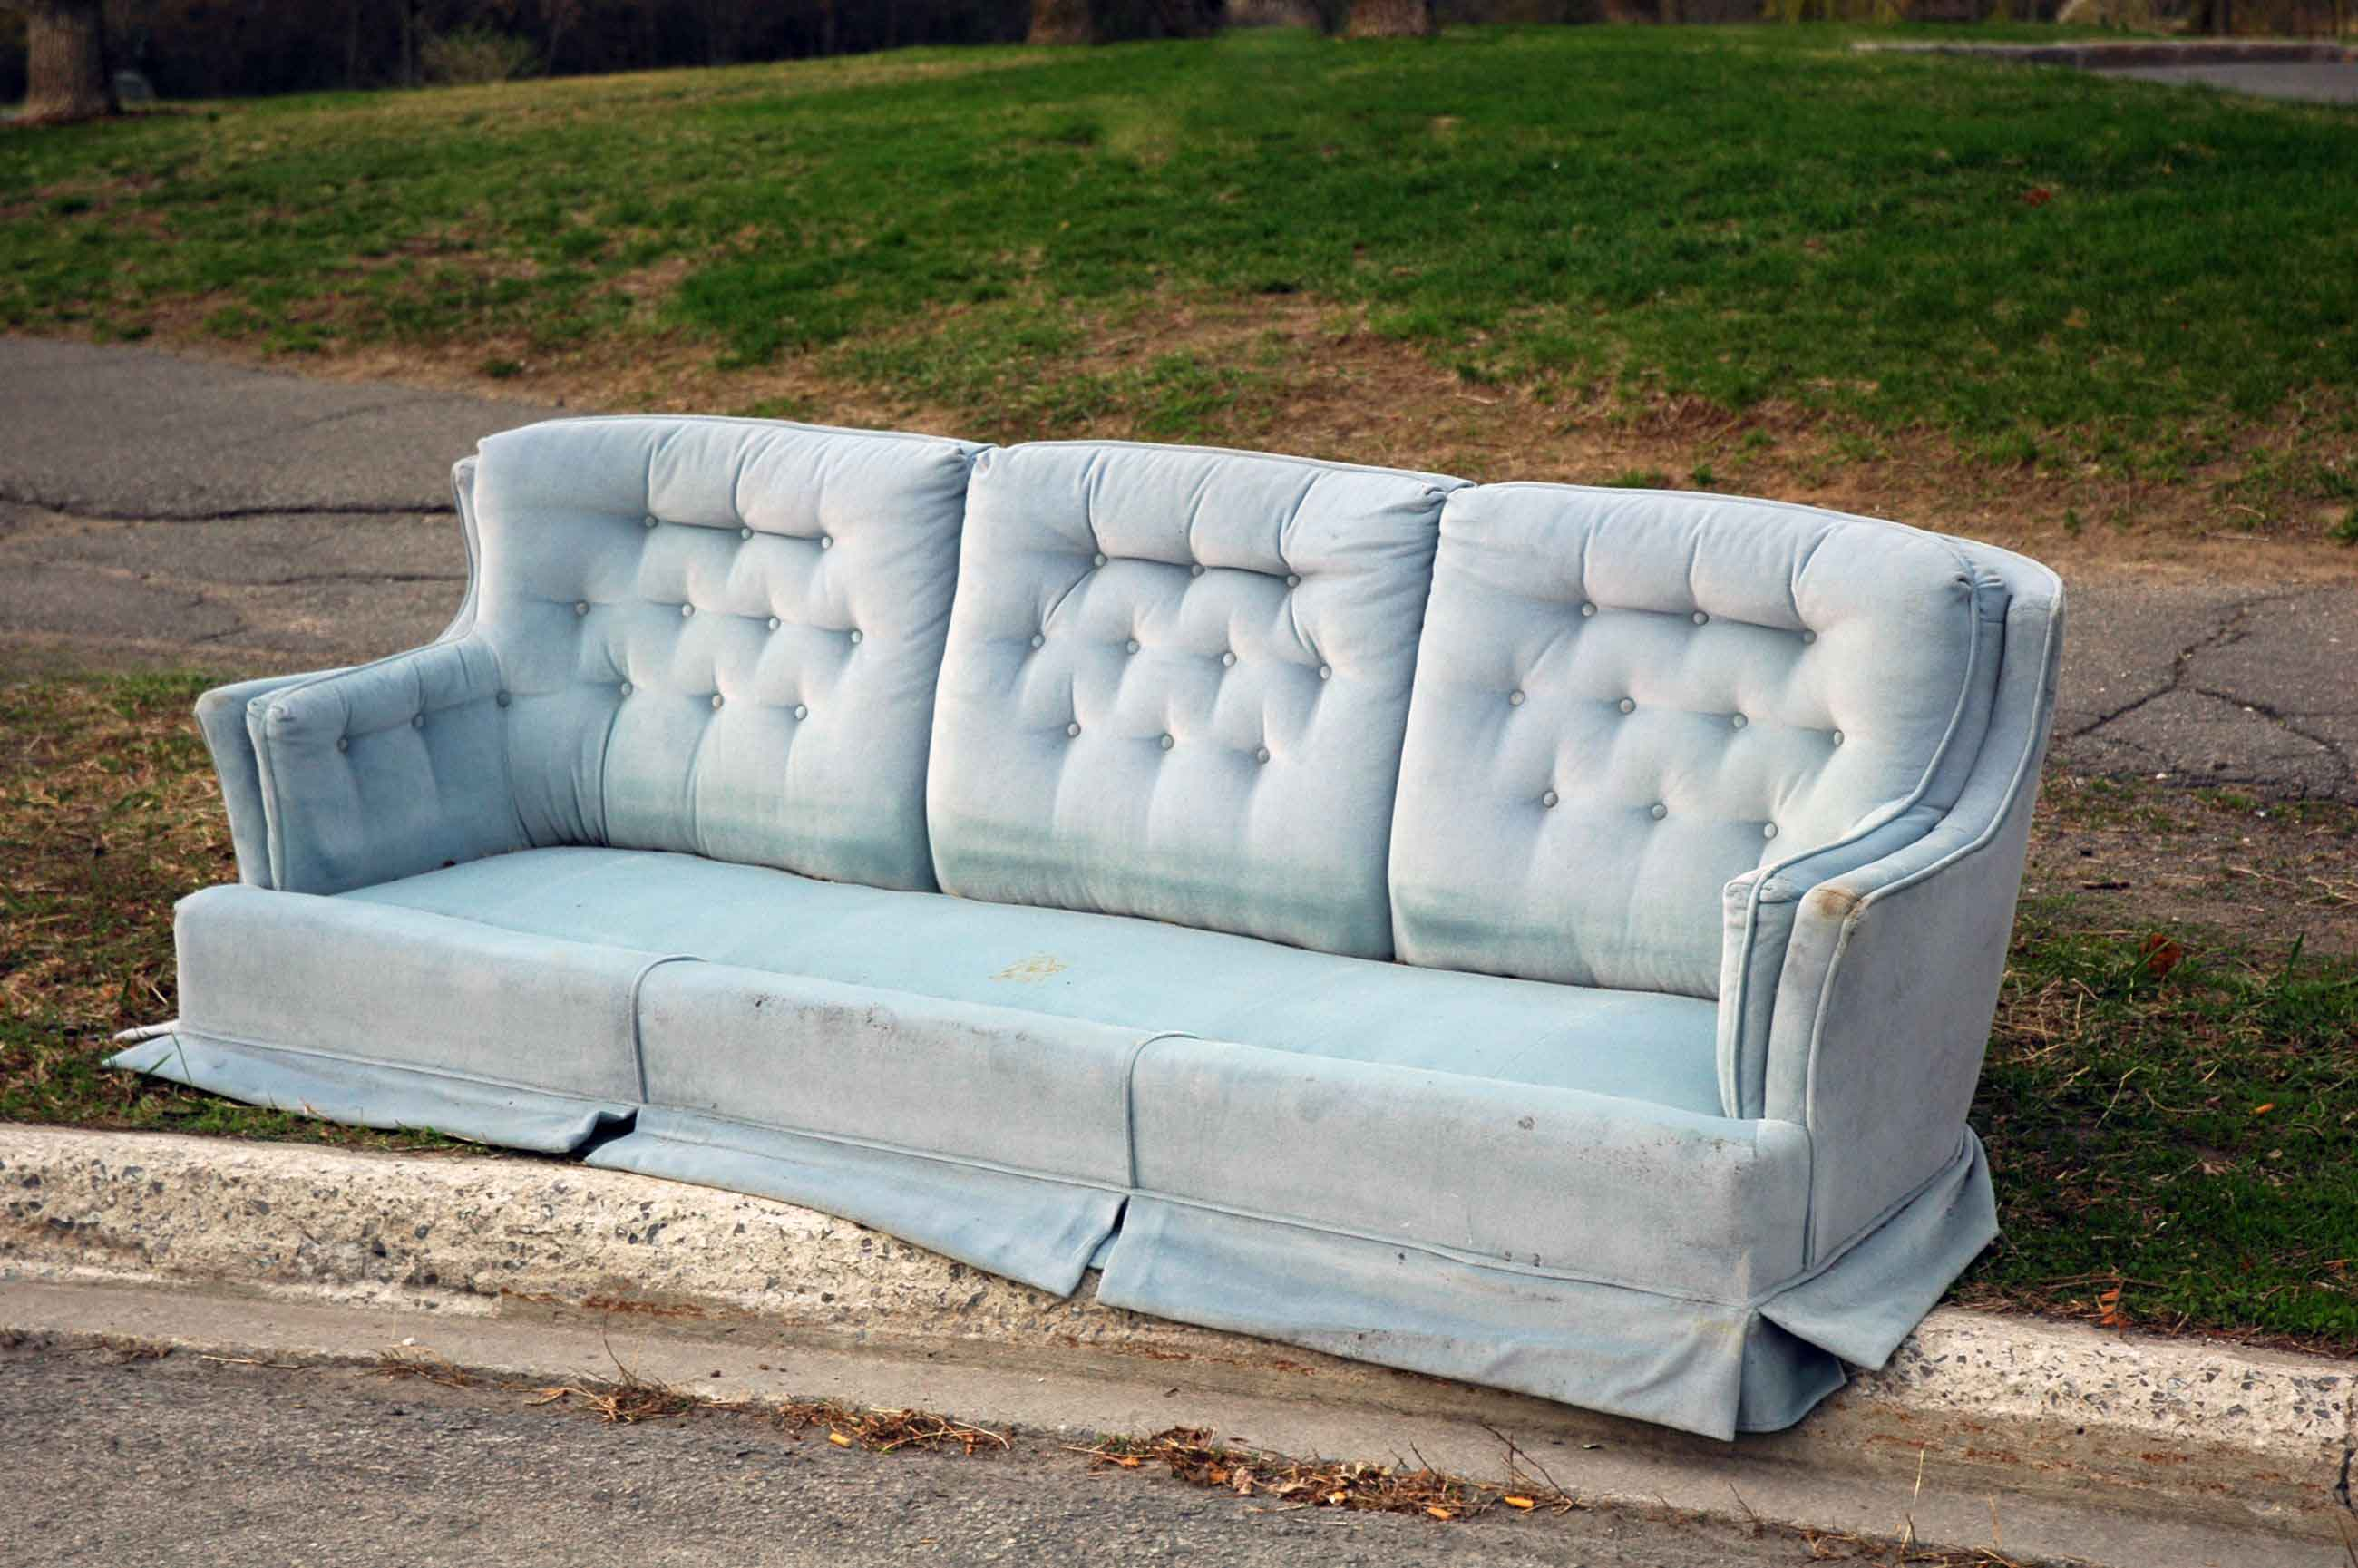 A couch on the curbside waiting to be picked up for trash